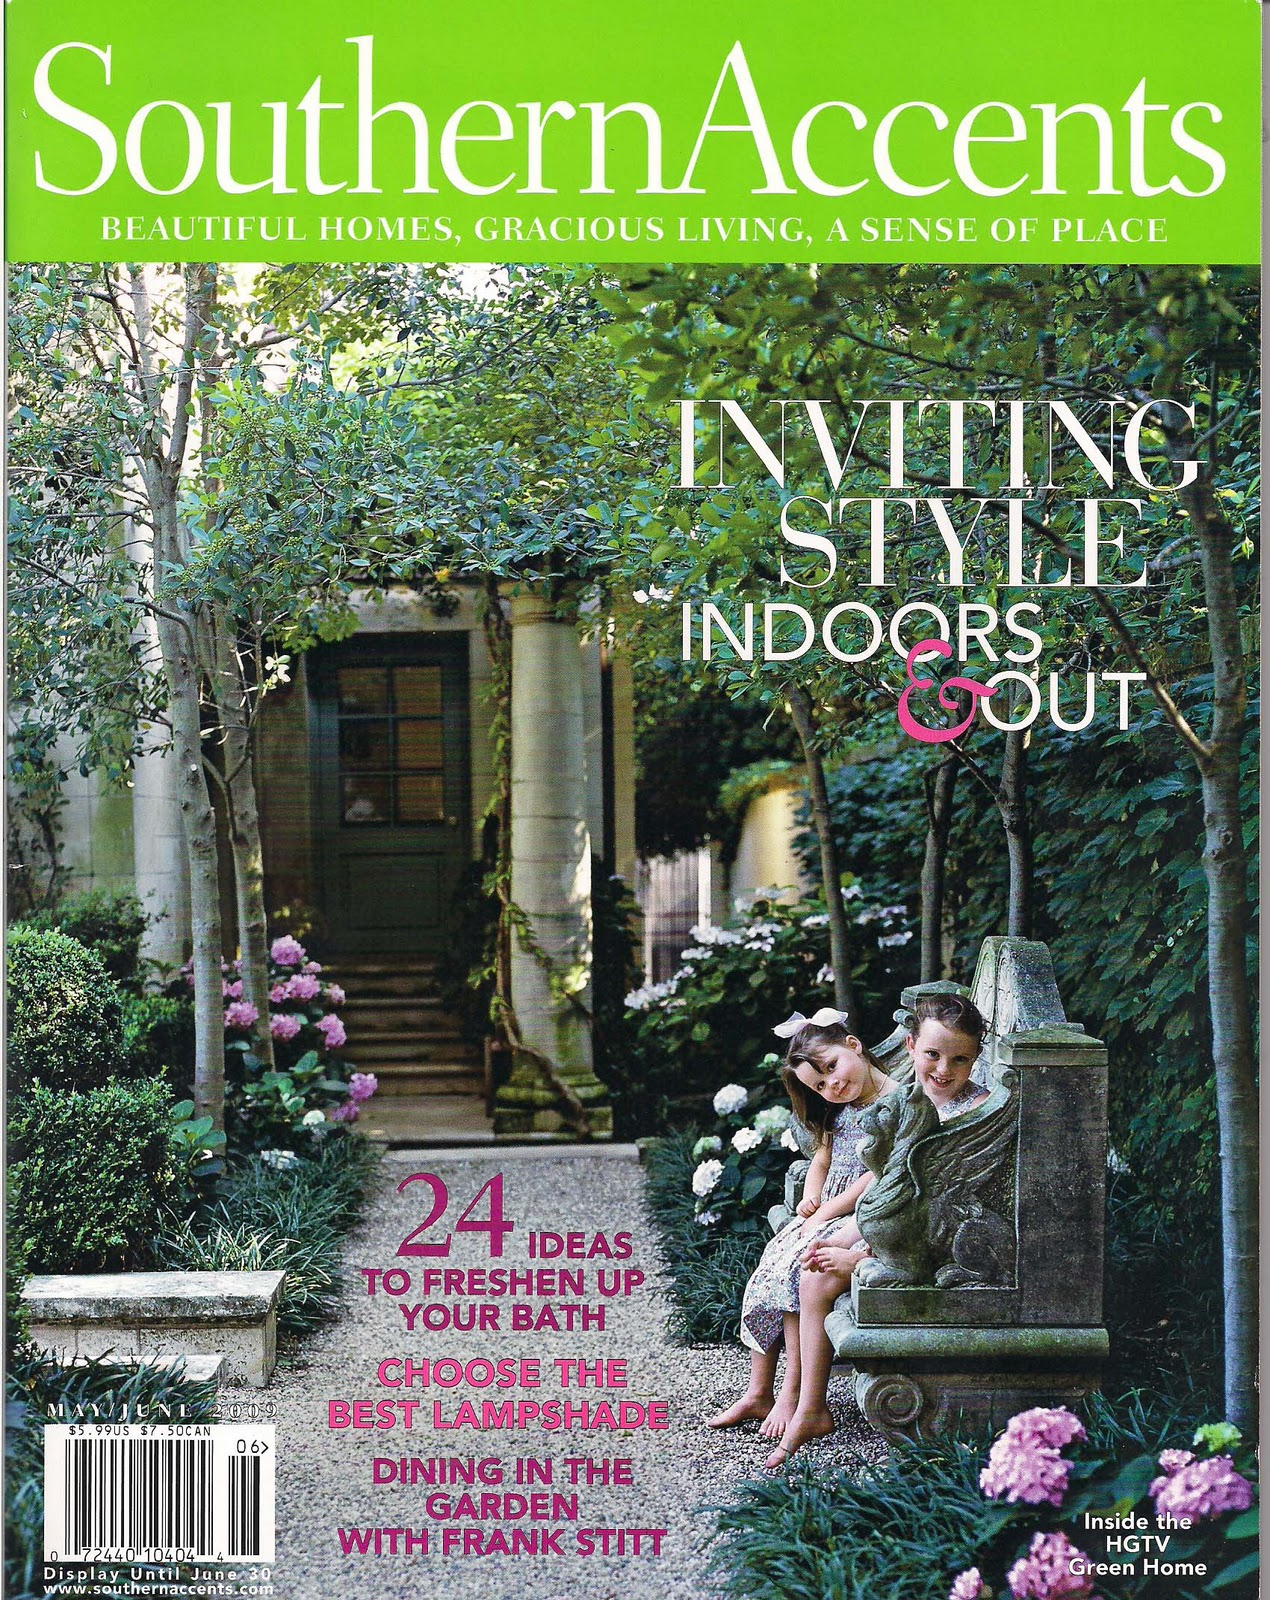 Southern Garden Design tuscan landscape design The Garden Of A John Tackett Design Project In Highland Park Dallas Was Featured On The Cover And In An Article In One Of The Last Monthly Issues Of The